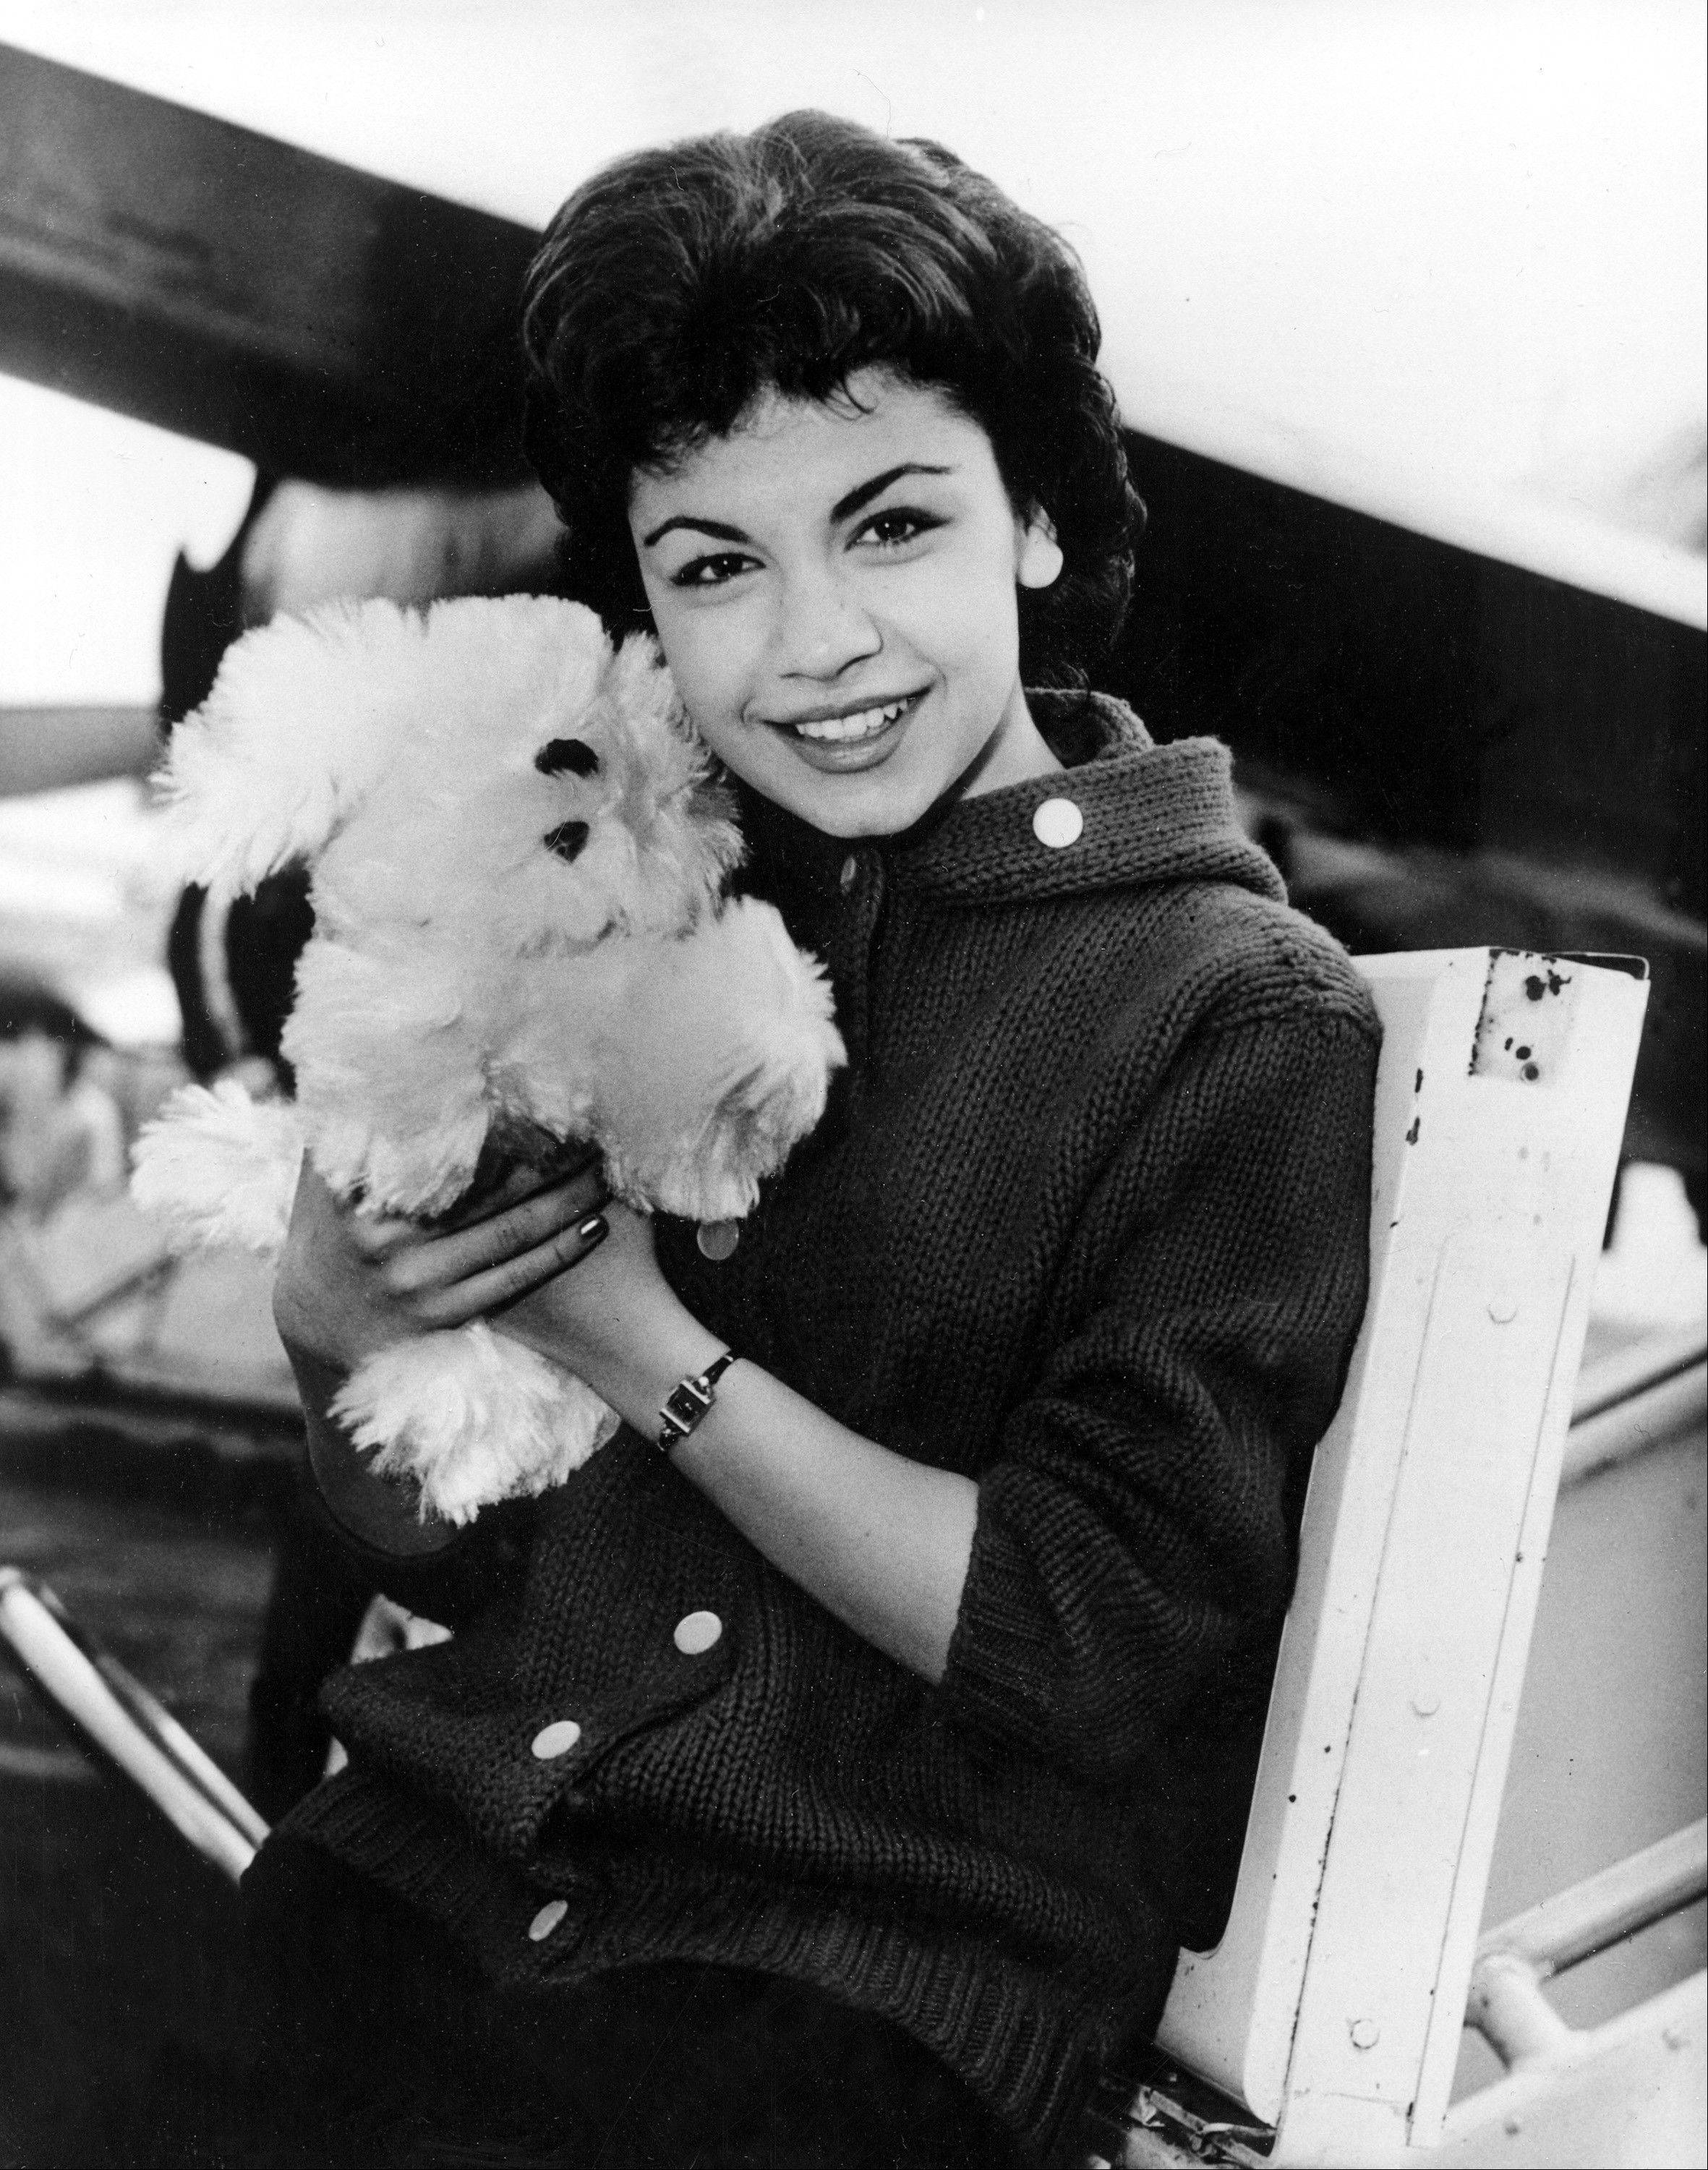 Walt Disney studio's star, 16-year-old Annette Funicello, poses with her Shaggy Dog doll.